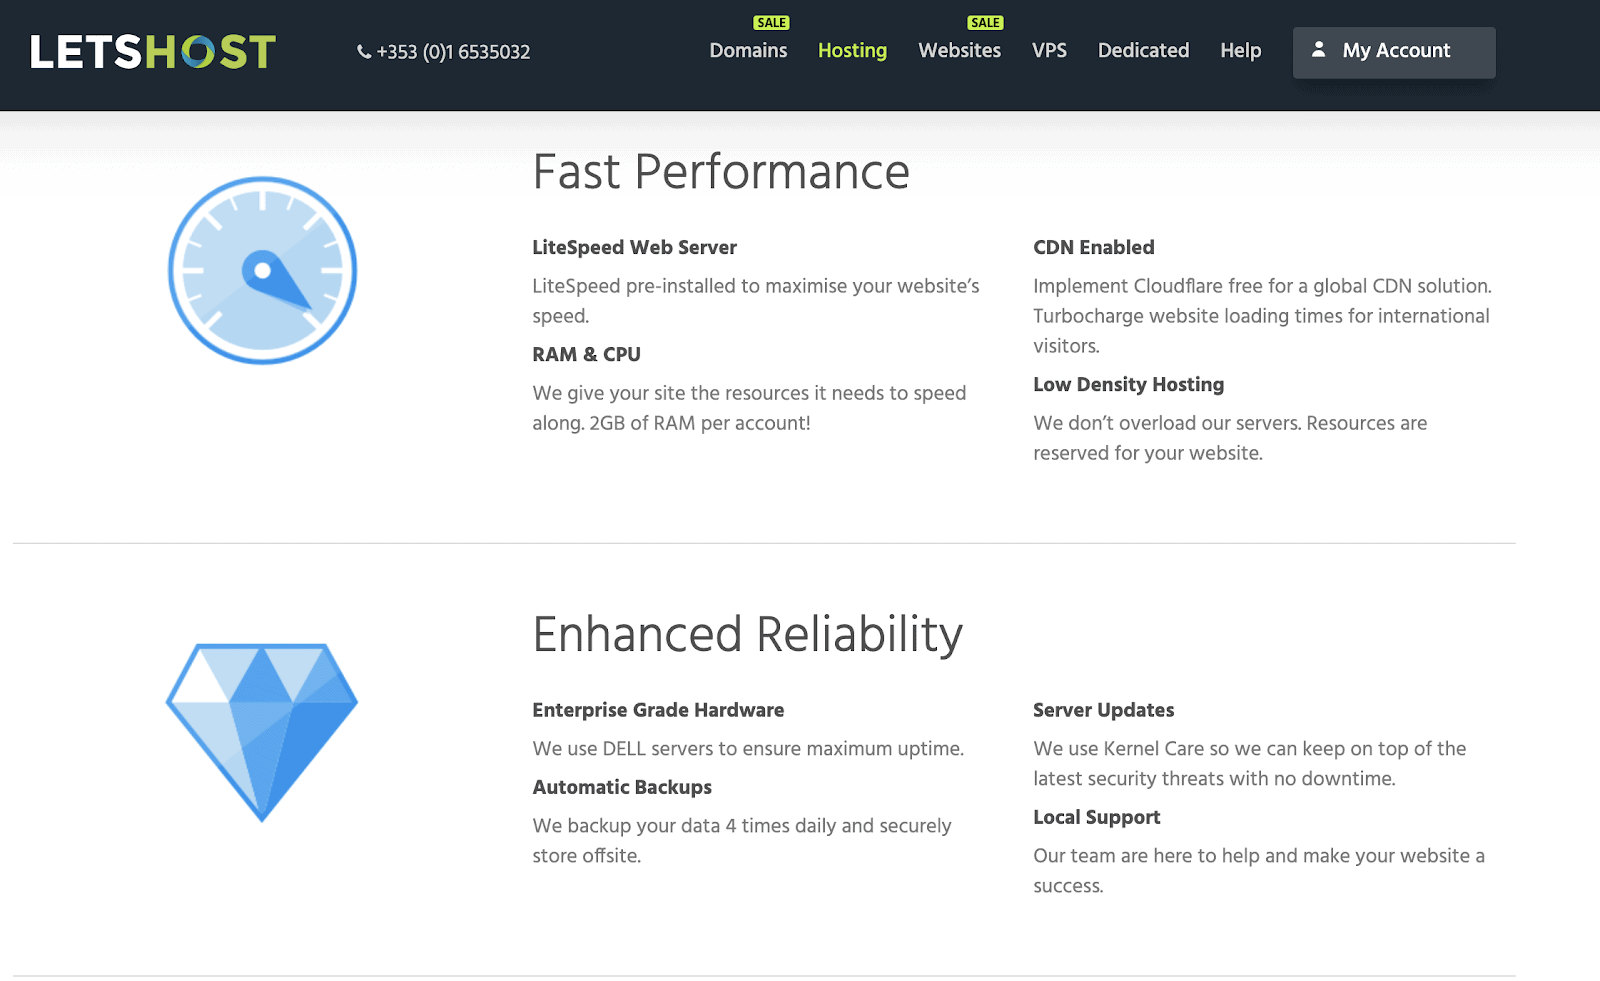 LetsHost performance features